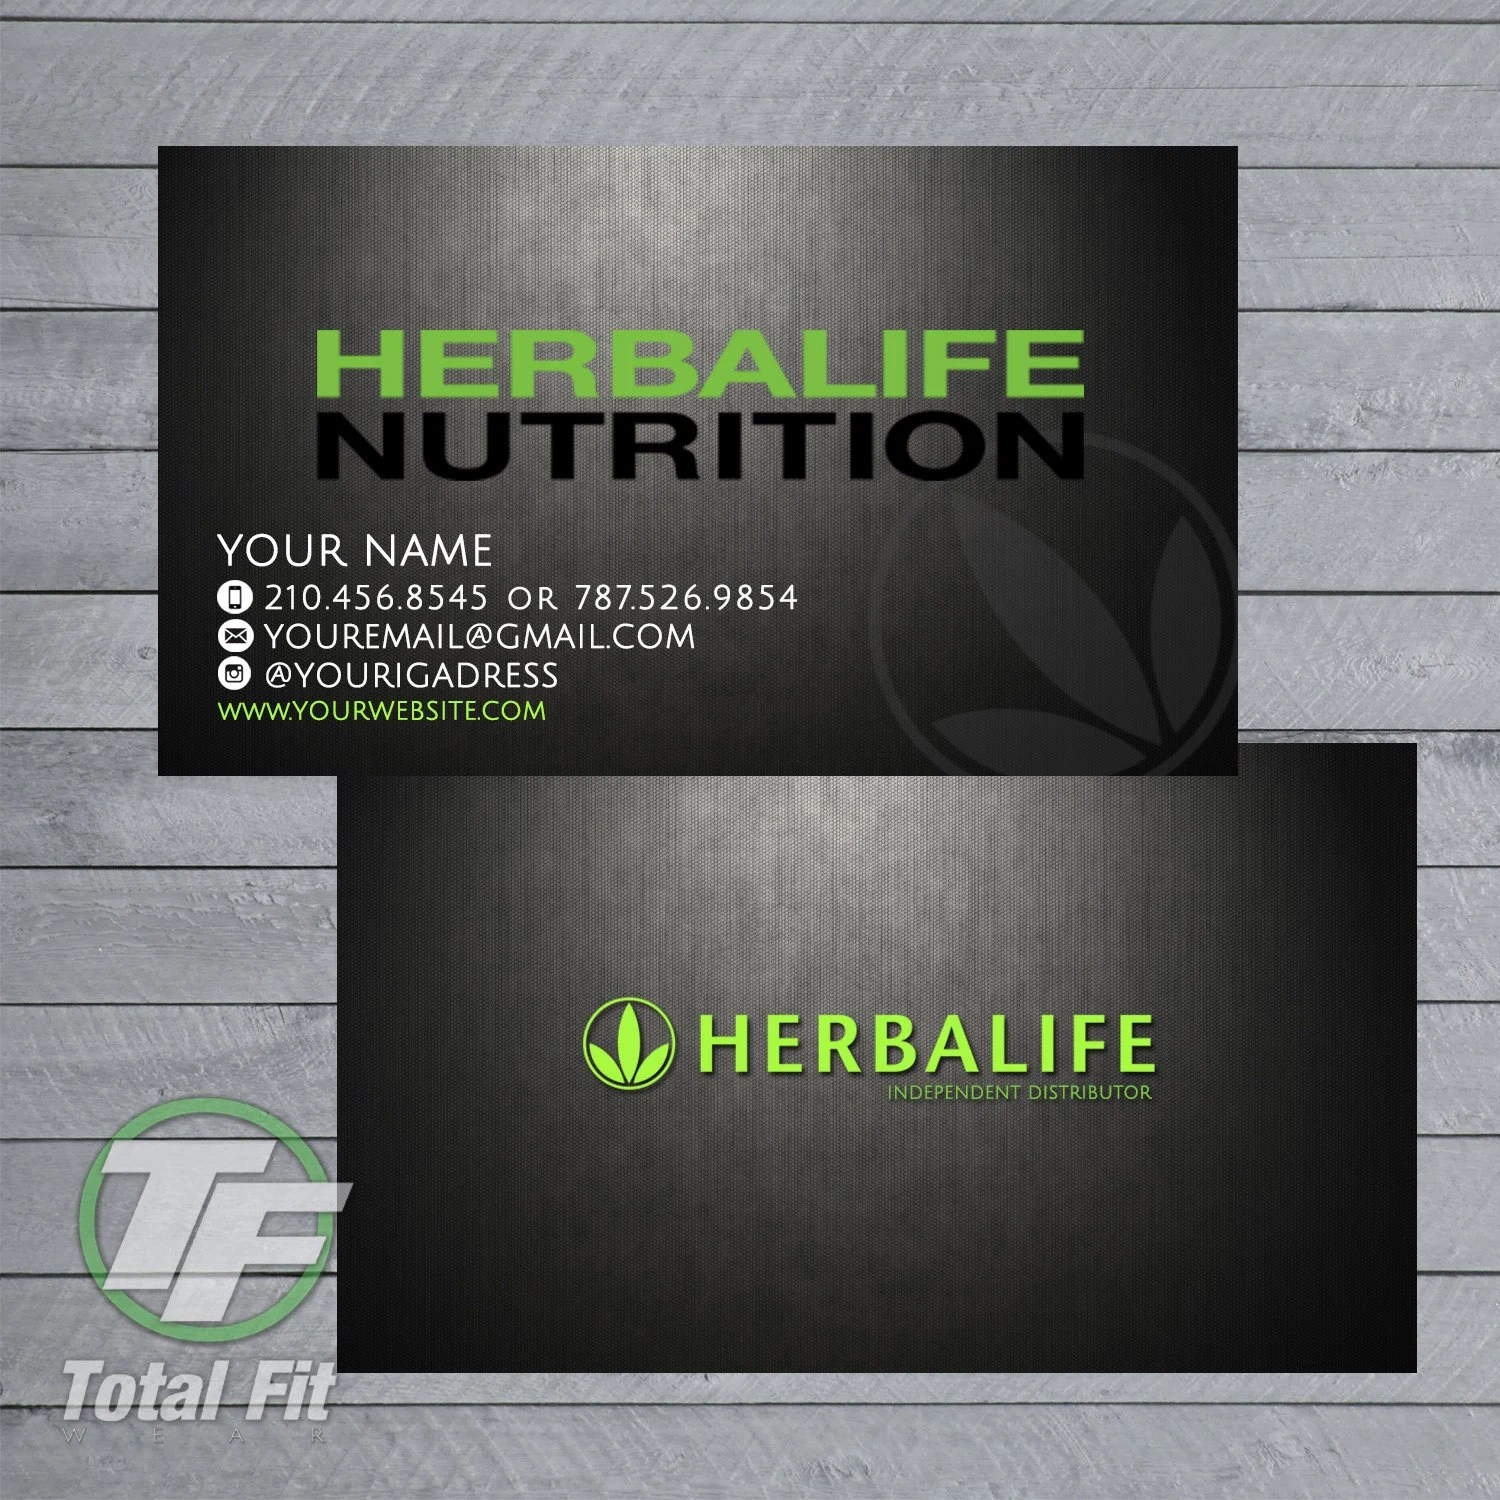 Herbalife Nutrition Business Cards Health And Traditional Medicine